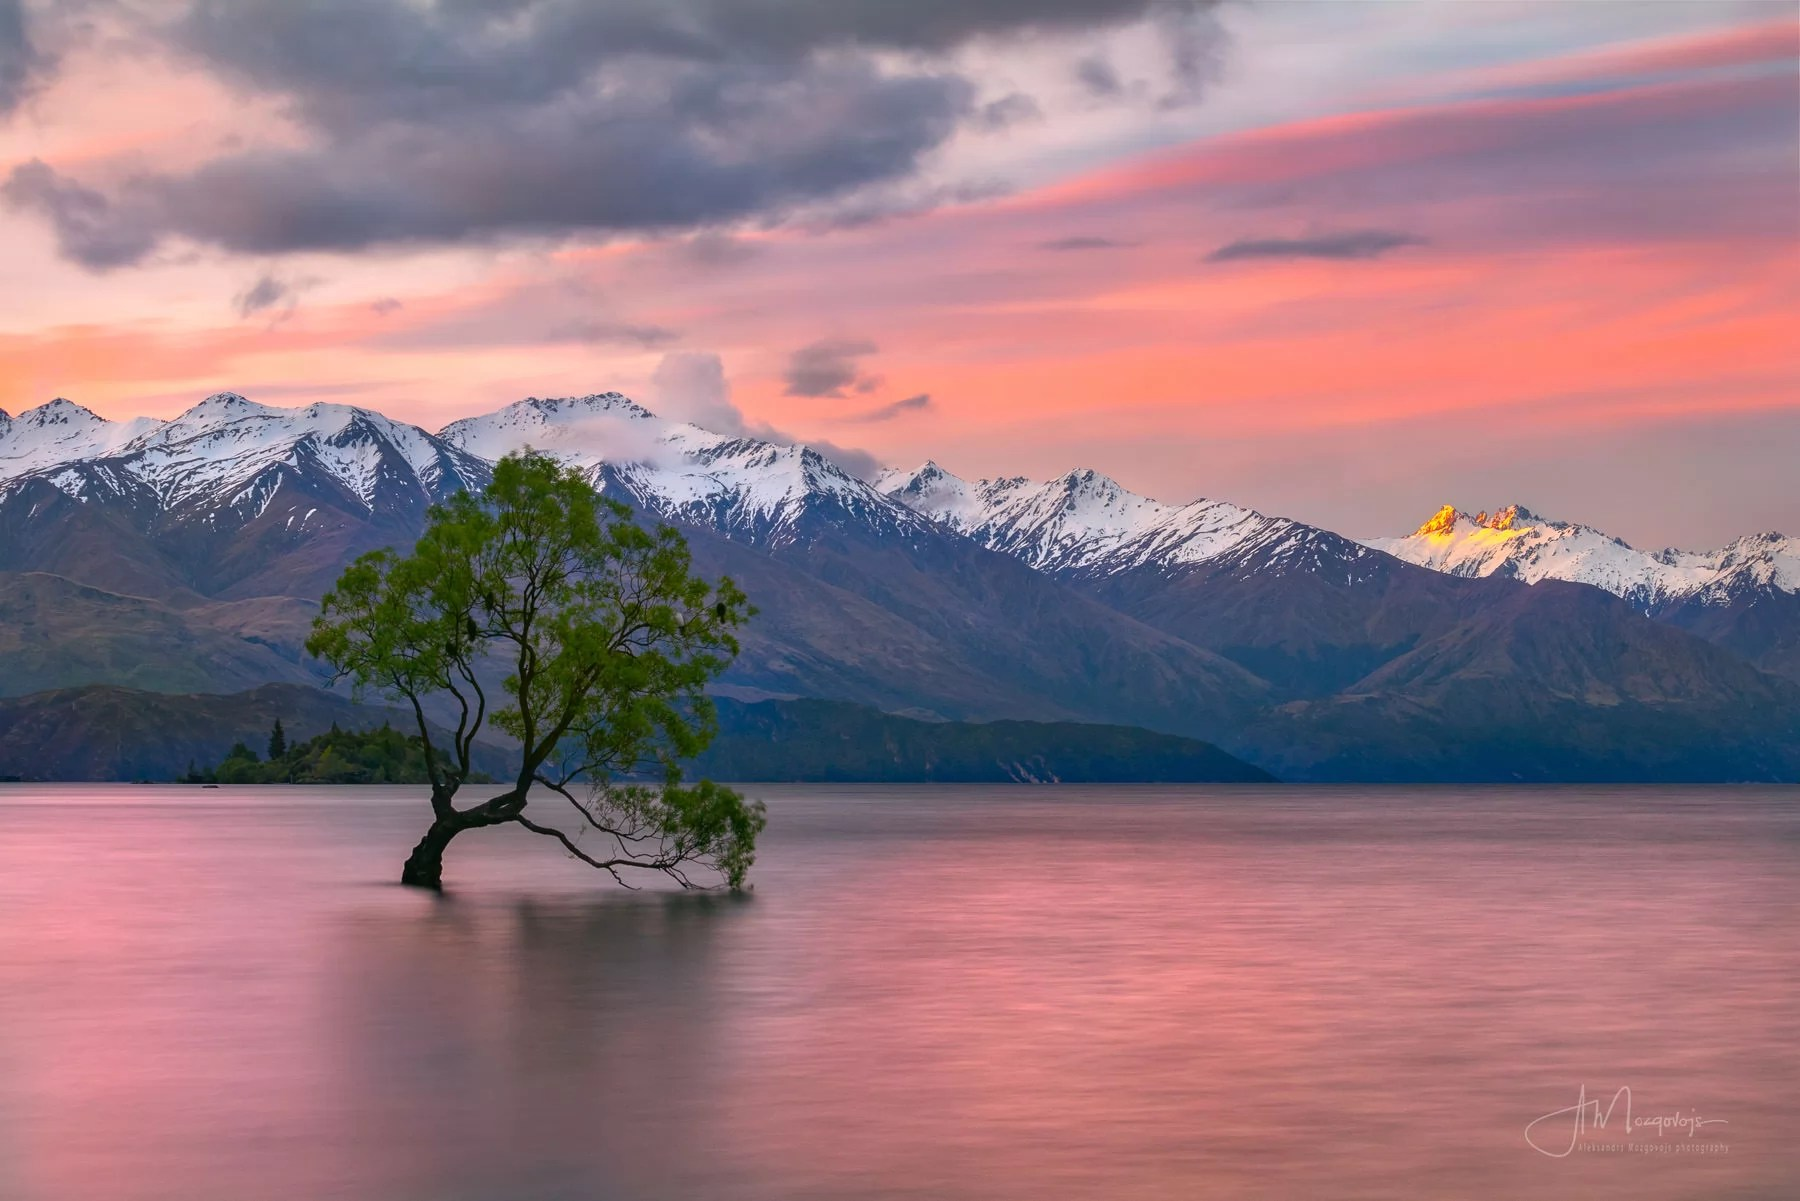 Wanaka Tree should is a must-see spot in this landscape photographer's mini guide to Wanaka